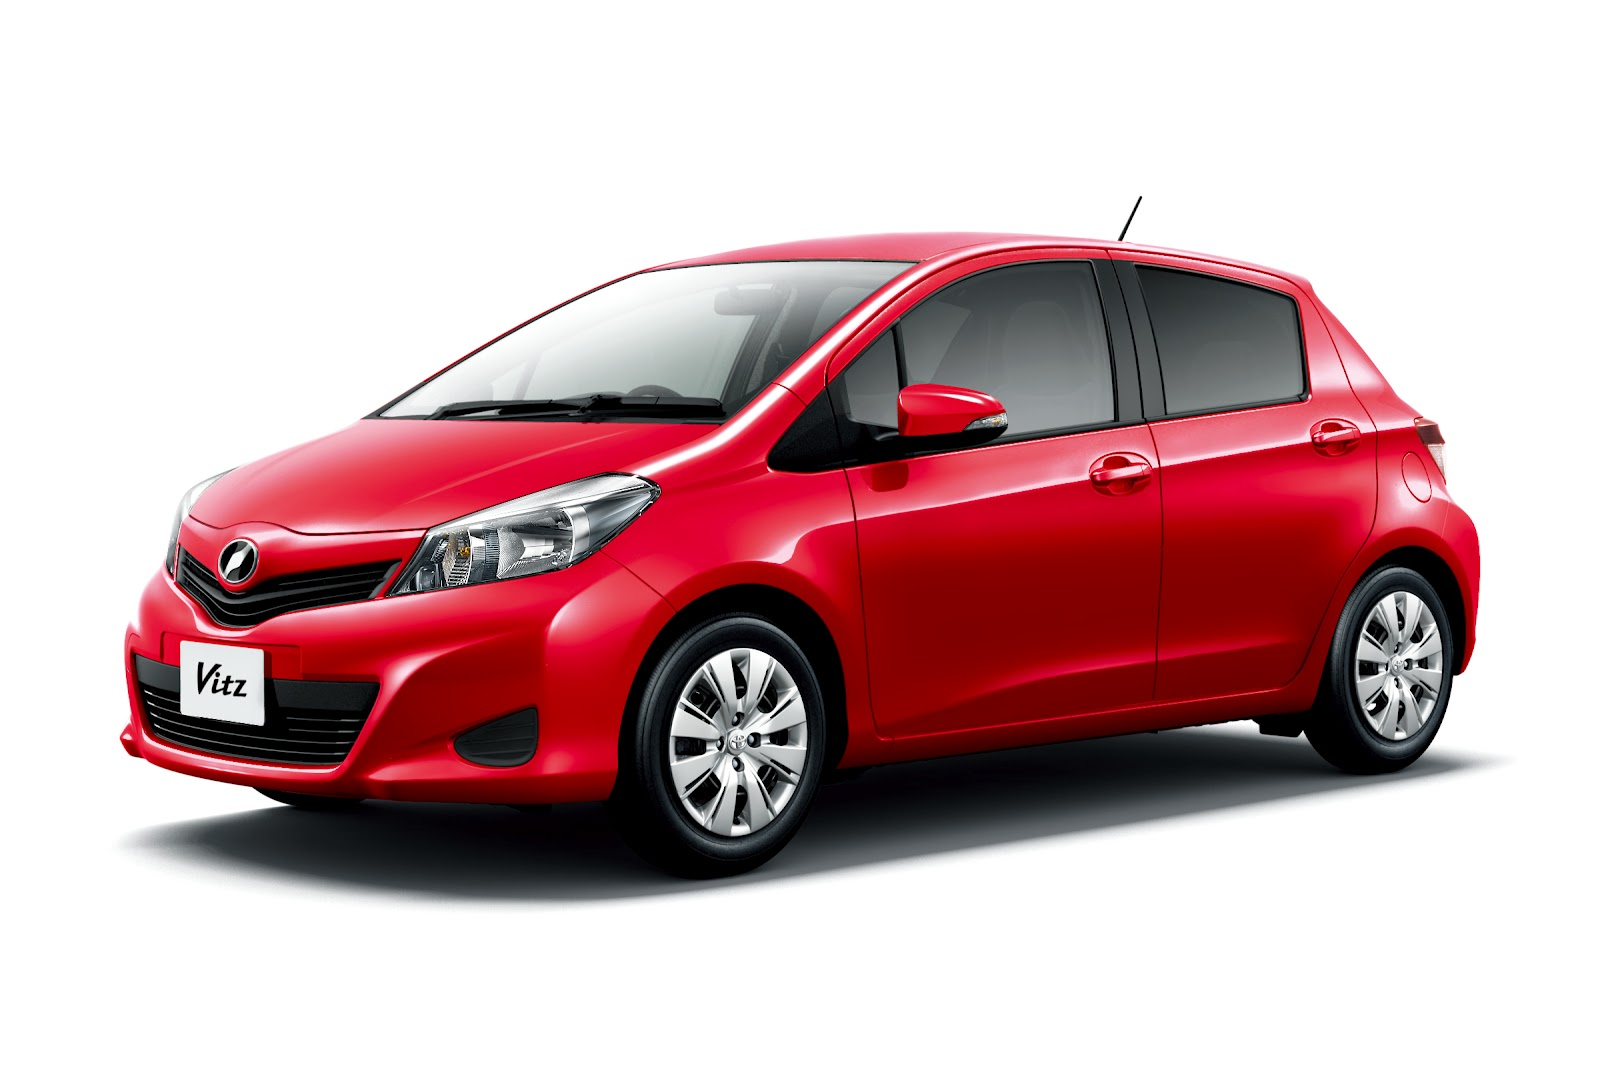 TOYOTA Vitz car technical data. Car specifications. Vehicle fuel